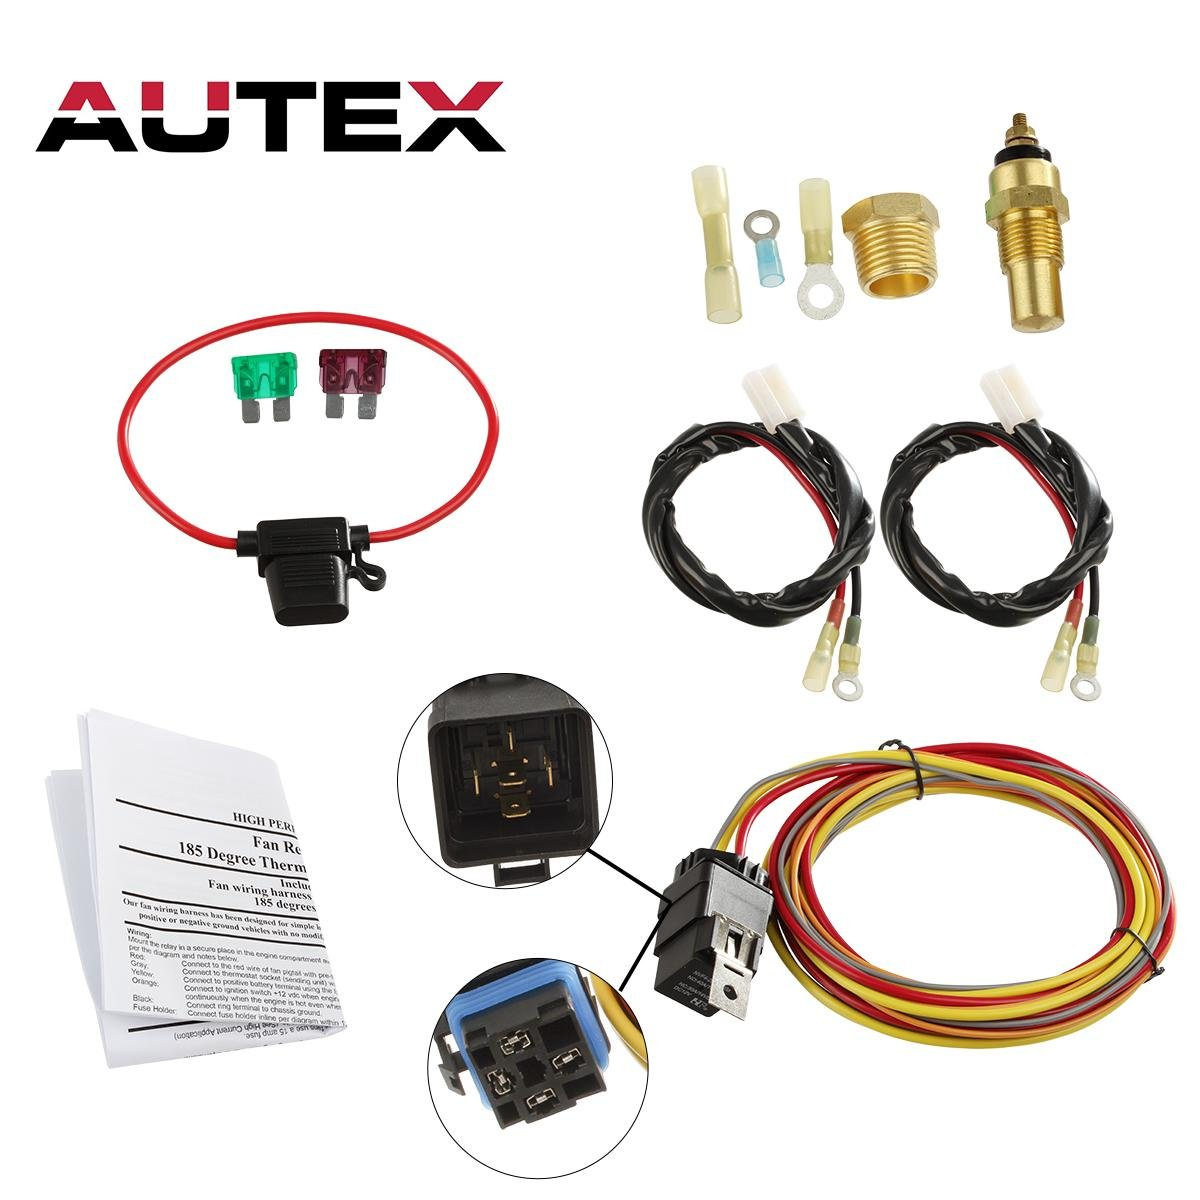 AUTEX NEW Dual Electric Cooling Fan 185 Degree On 165 Off Engine Fan on cooling thermostat wiring, thermostat relay circuit diagram, trane heat pumps thermostat wiring, 240v thermostat wiring, honeywell thermostat wiring, thermostat wiring color code, thermostat transformer, 24 volt thermostat wiring, thermostat mercury wiring, heat cool thermostat wiring, york heat pump thermostat wiring, thermostat to furnace relay, house thermostat wiring, 2 stage heat pump thermostat wiring, thermostat controlled heat lamp, wood stove thermostat wiring, boiler thermostat wiring, diy thermostat wiring, thermostat relay control, thermostat c wire,